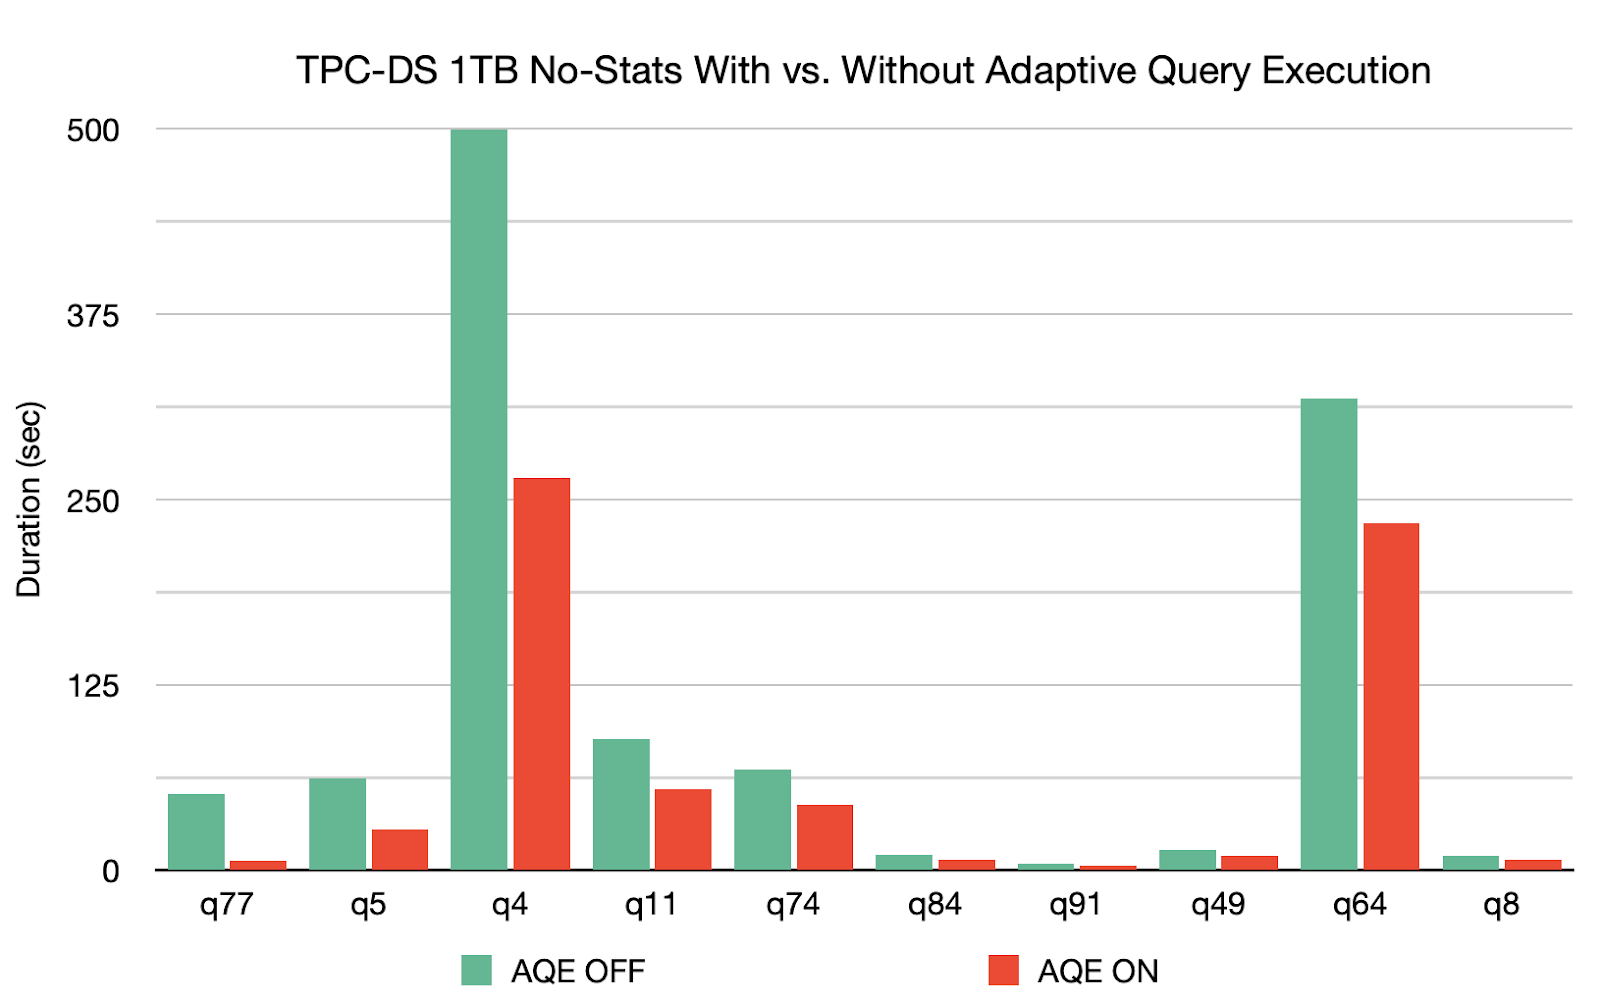 TPS-DS 1TB No-Statistics with vs. without Adaptive Query Execution.